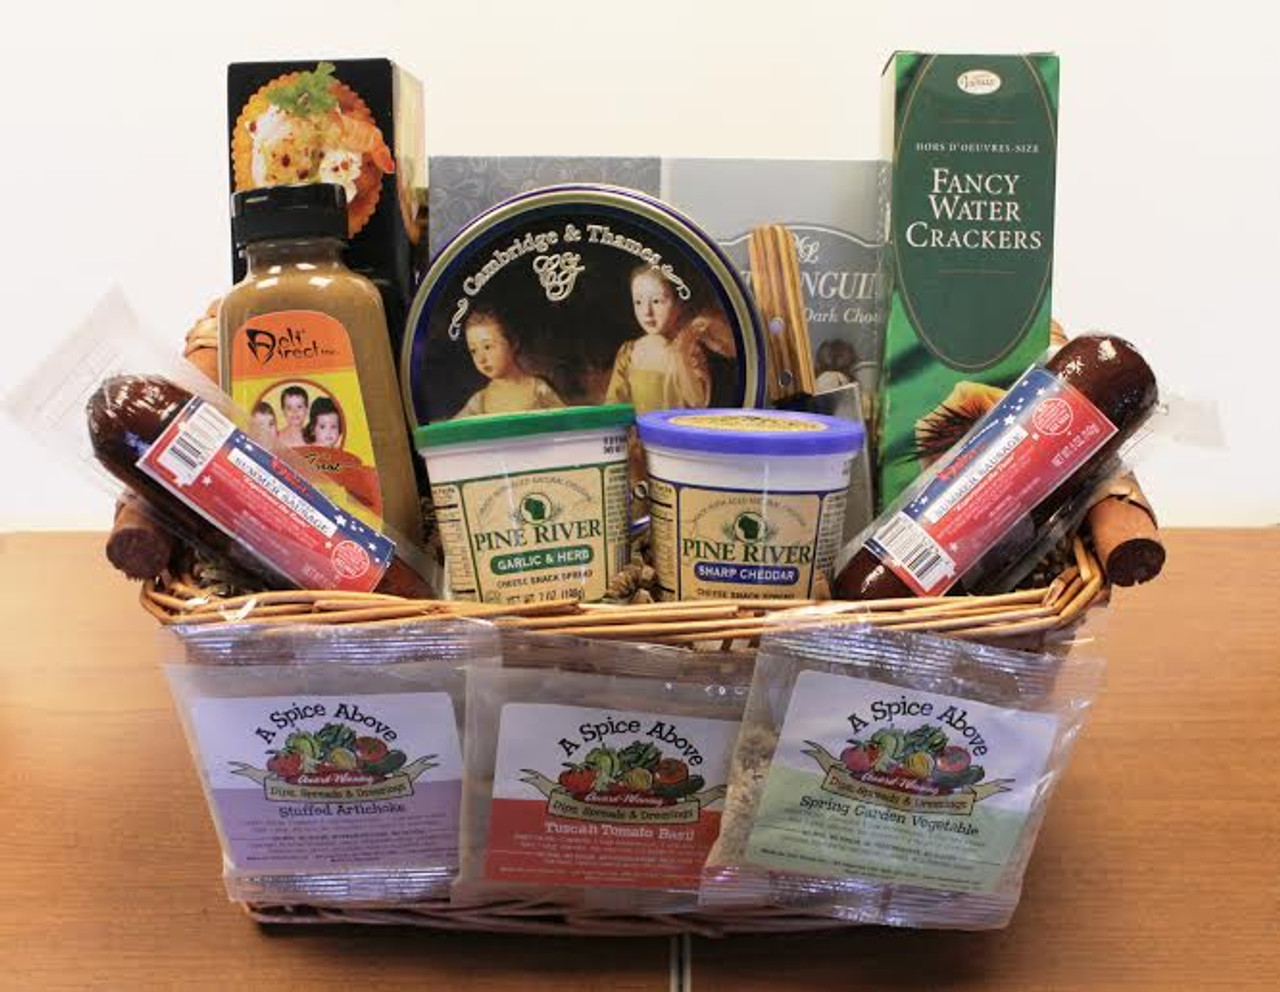 11-Piece Party Favorites Gourmet Sausage, Cheese and Dip Gift Basket - 31450888